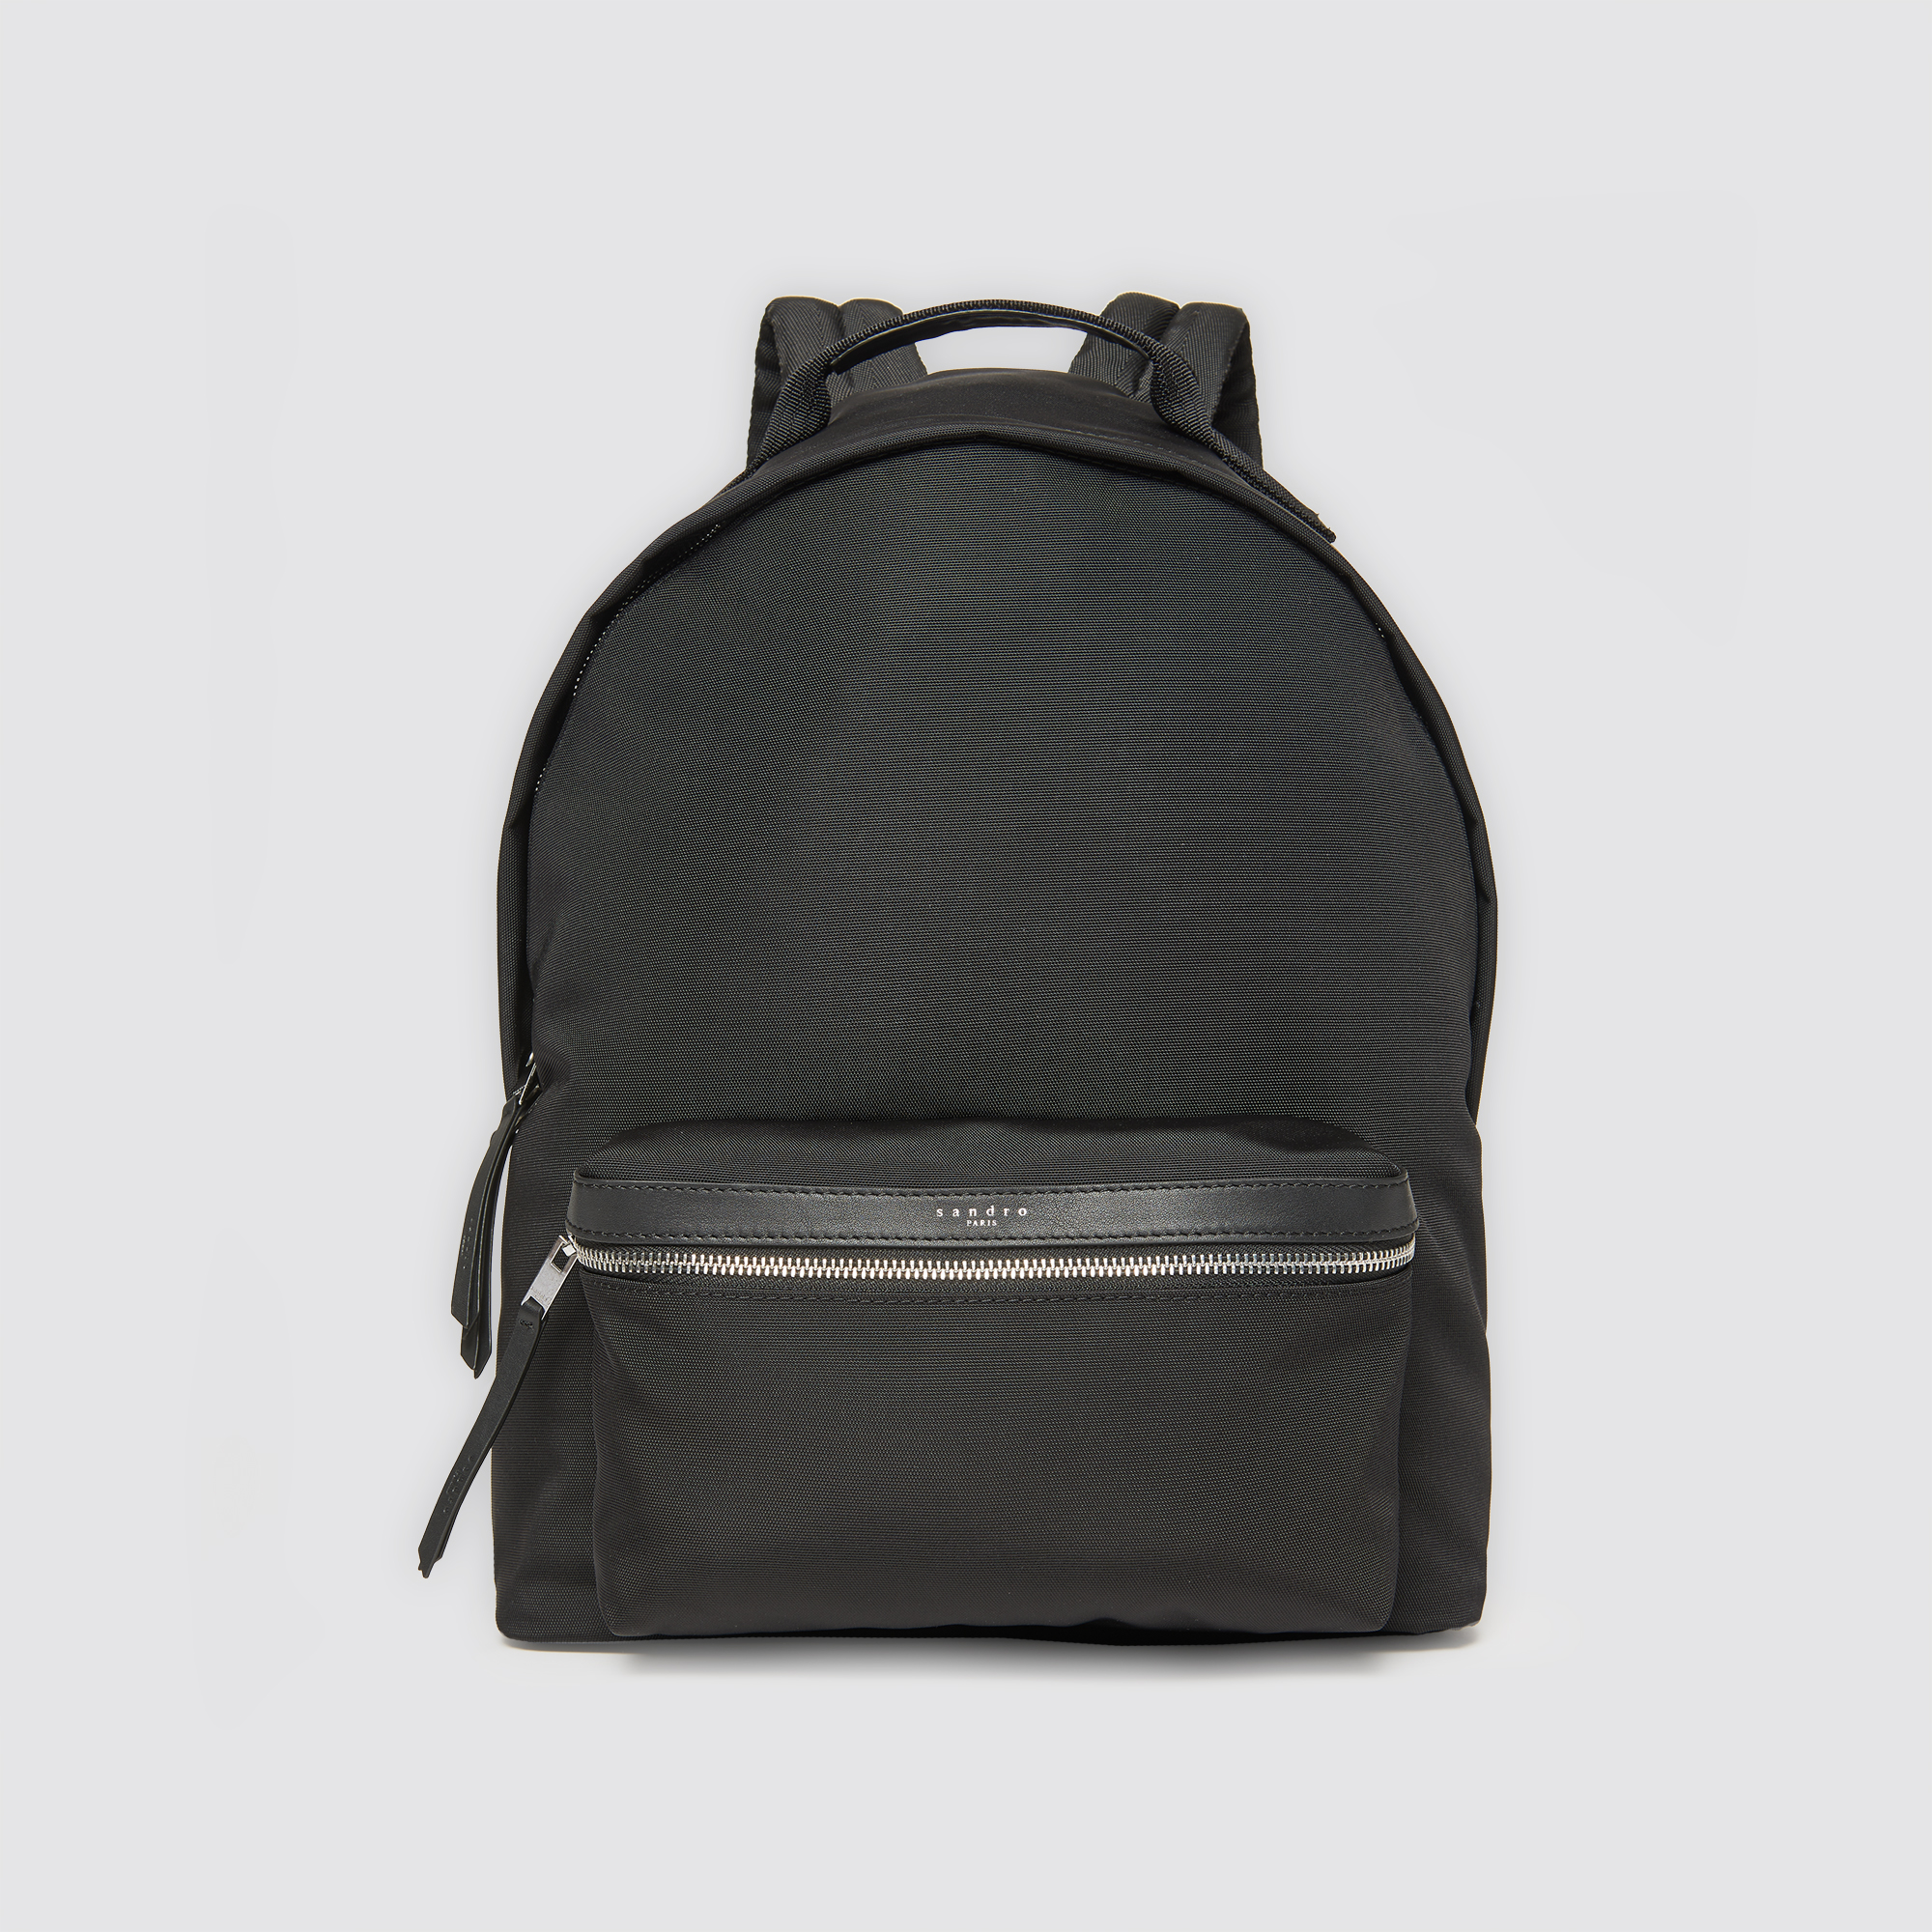 cf3595c1d0a6 Technical material backpack summer collection color black jpg 2000x2000 Backpack  material